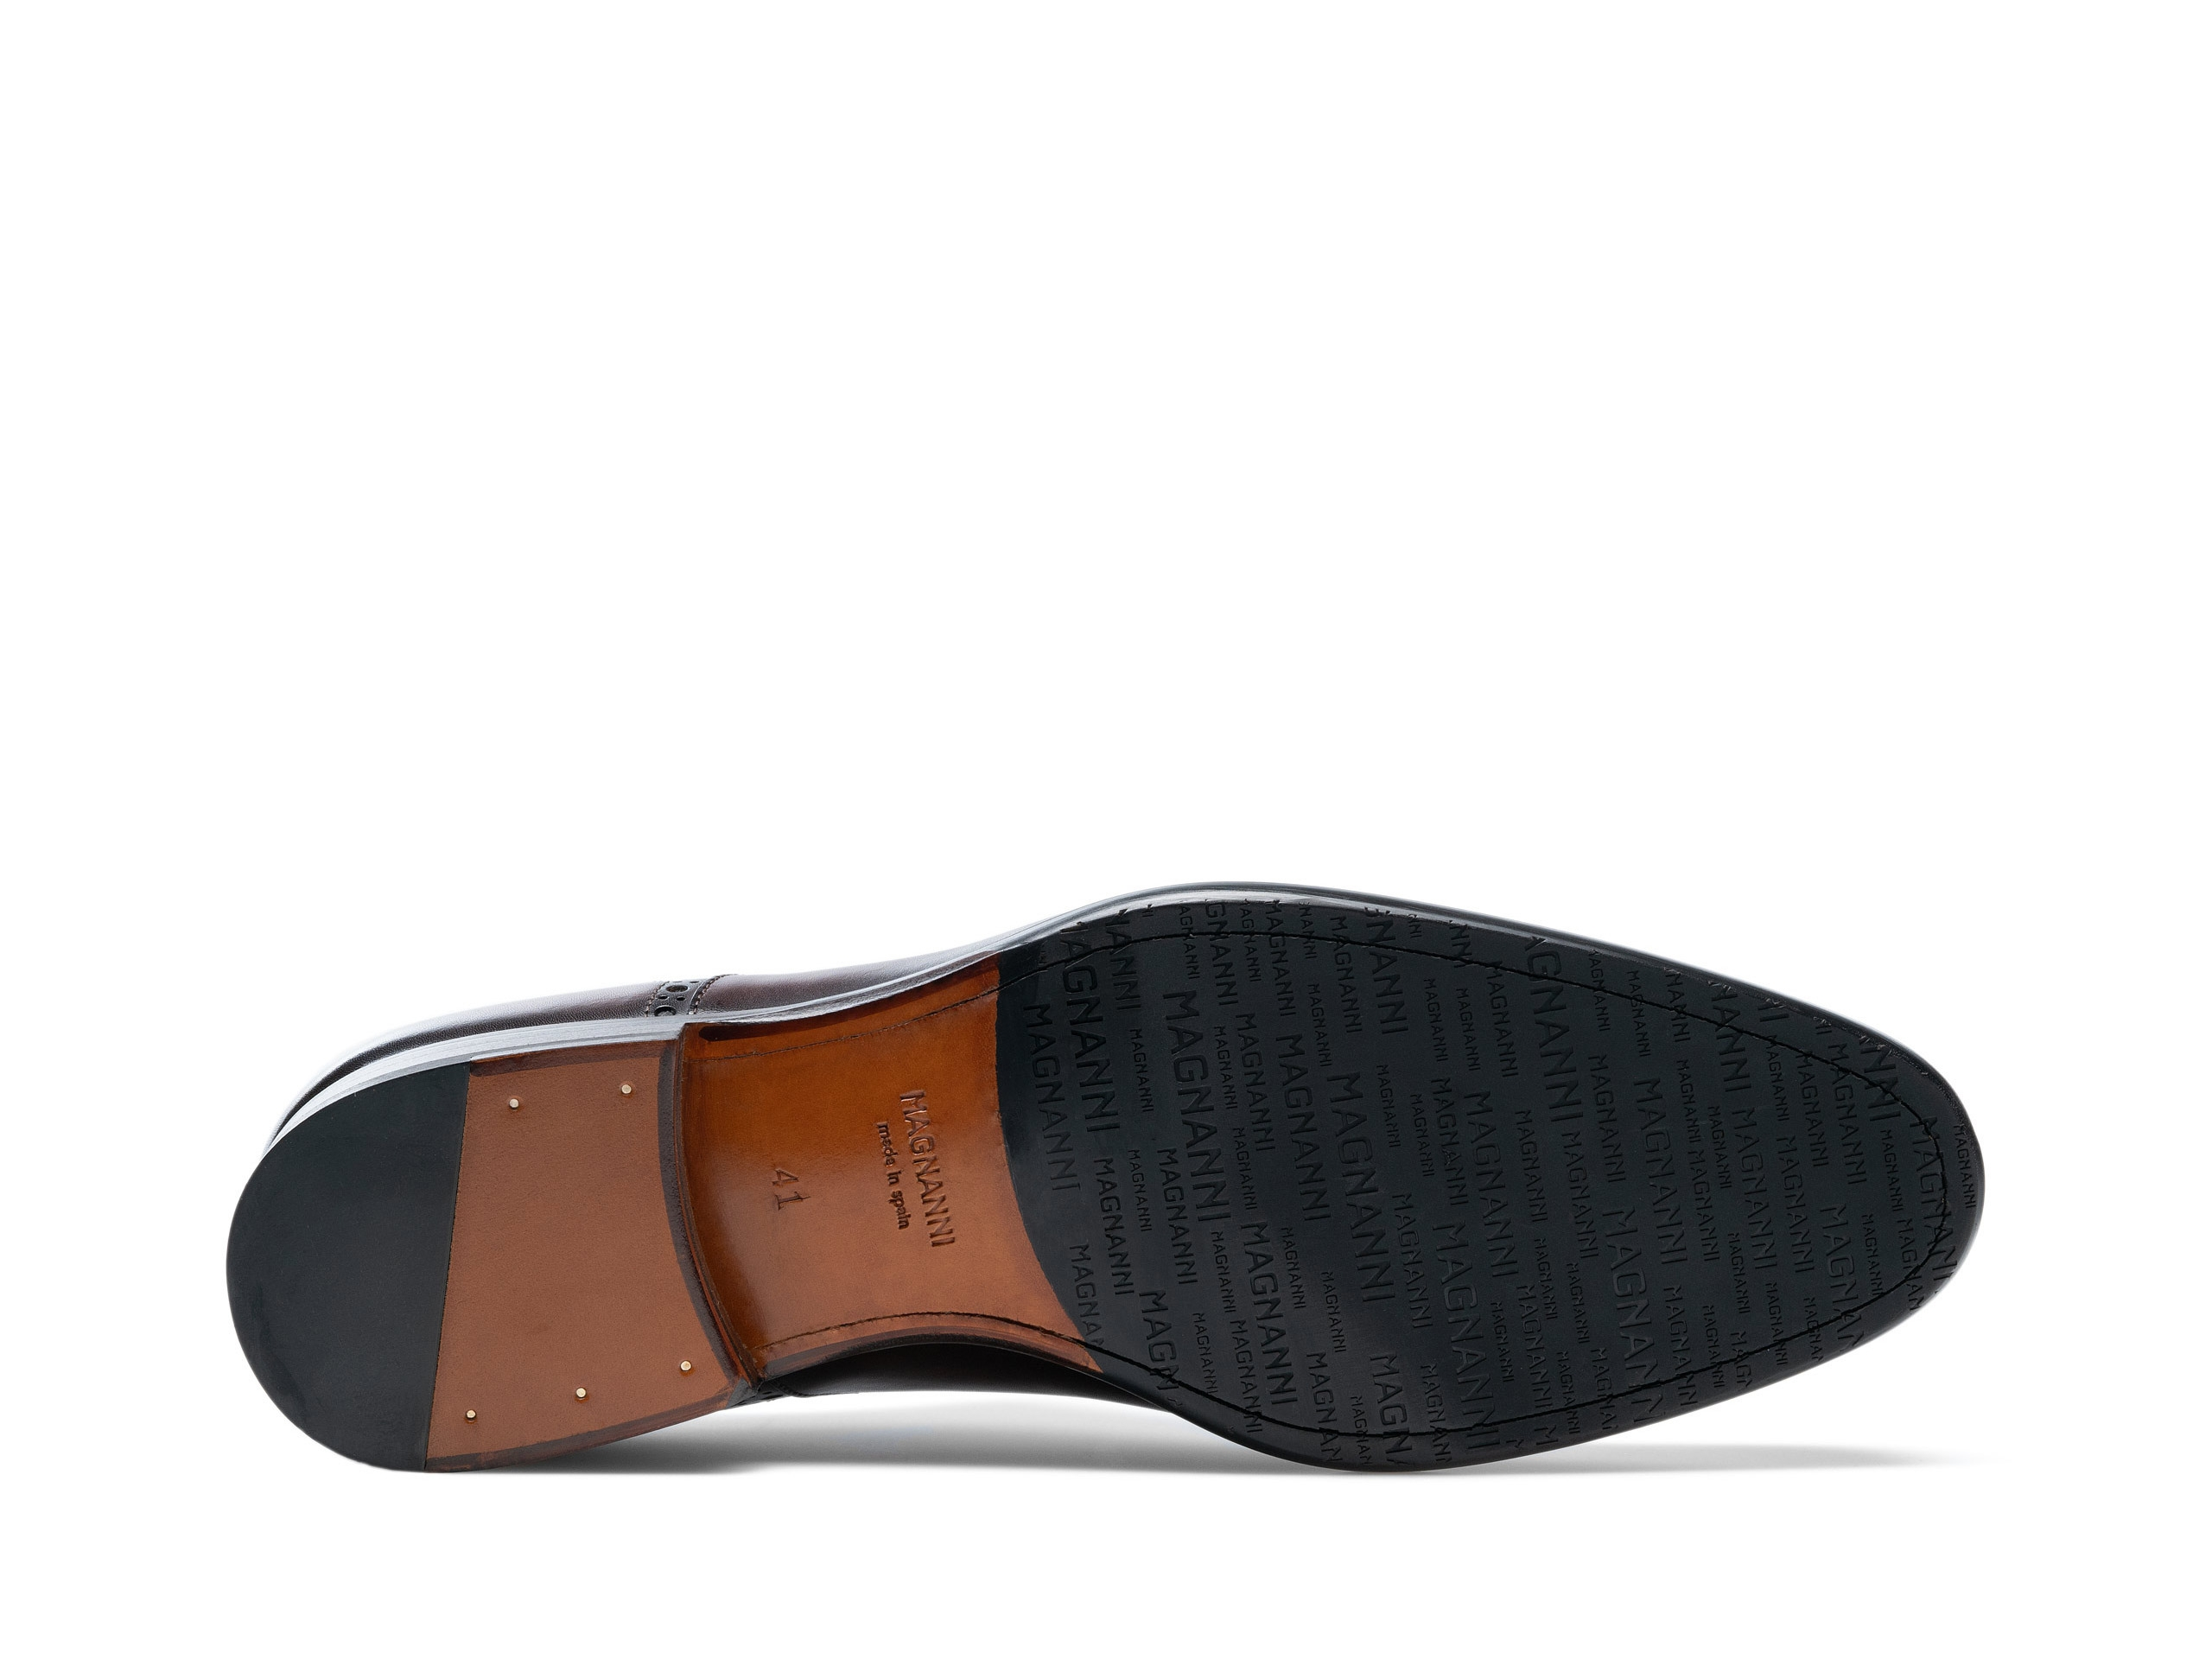 The sole of the Hervas